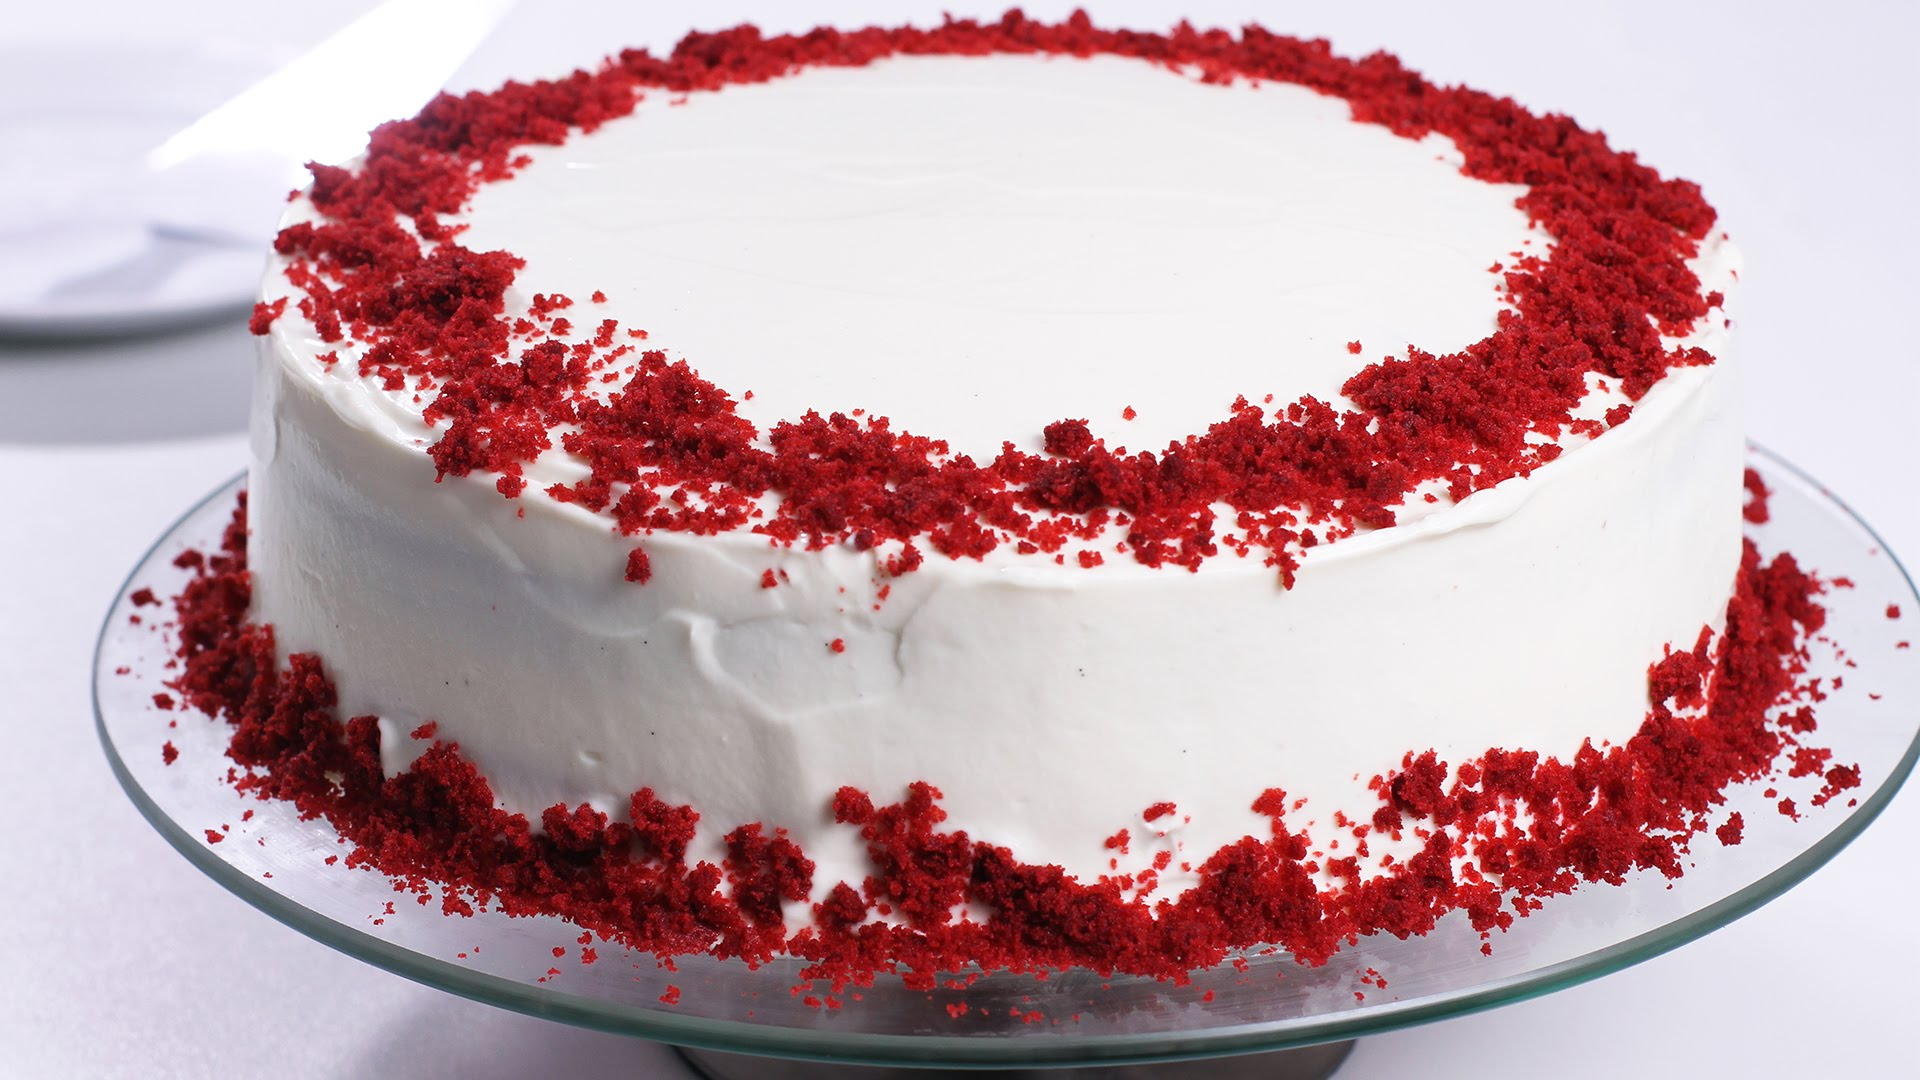 Who Knew Combining These 3 Ingredients Would Make An Incredible Red Vevlet Cake